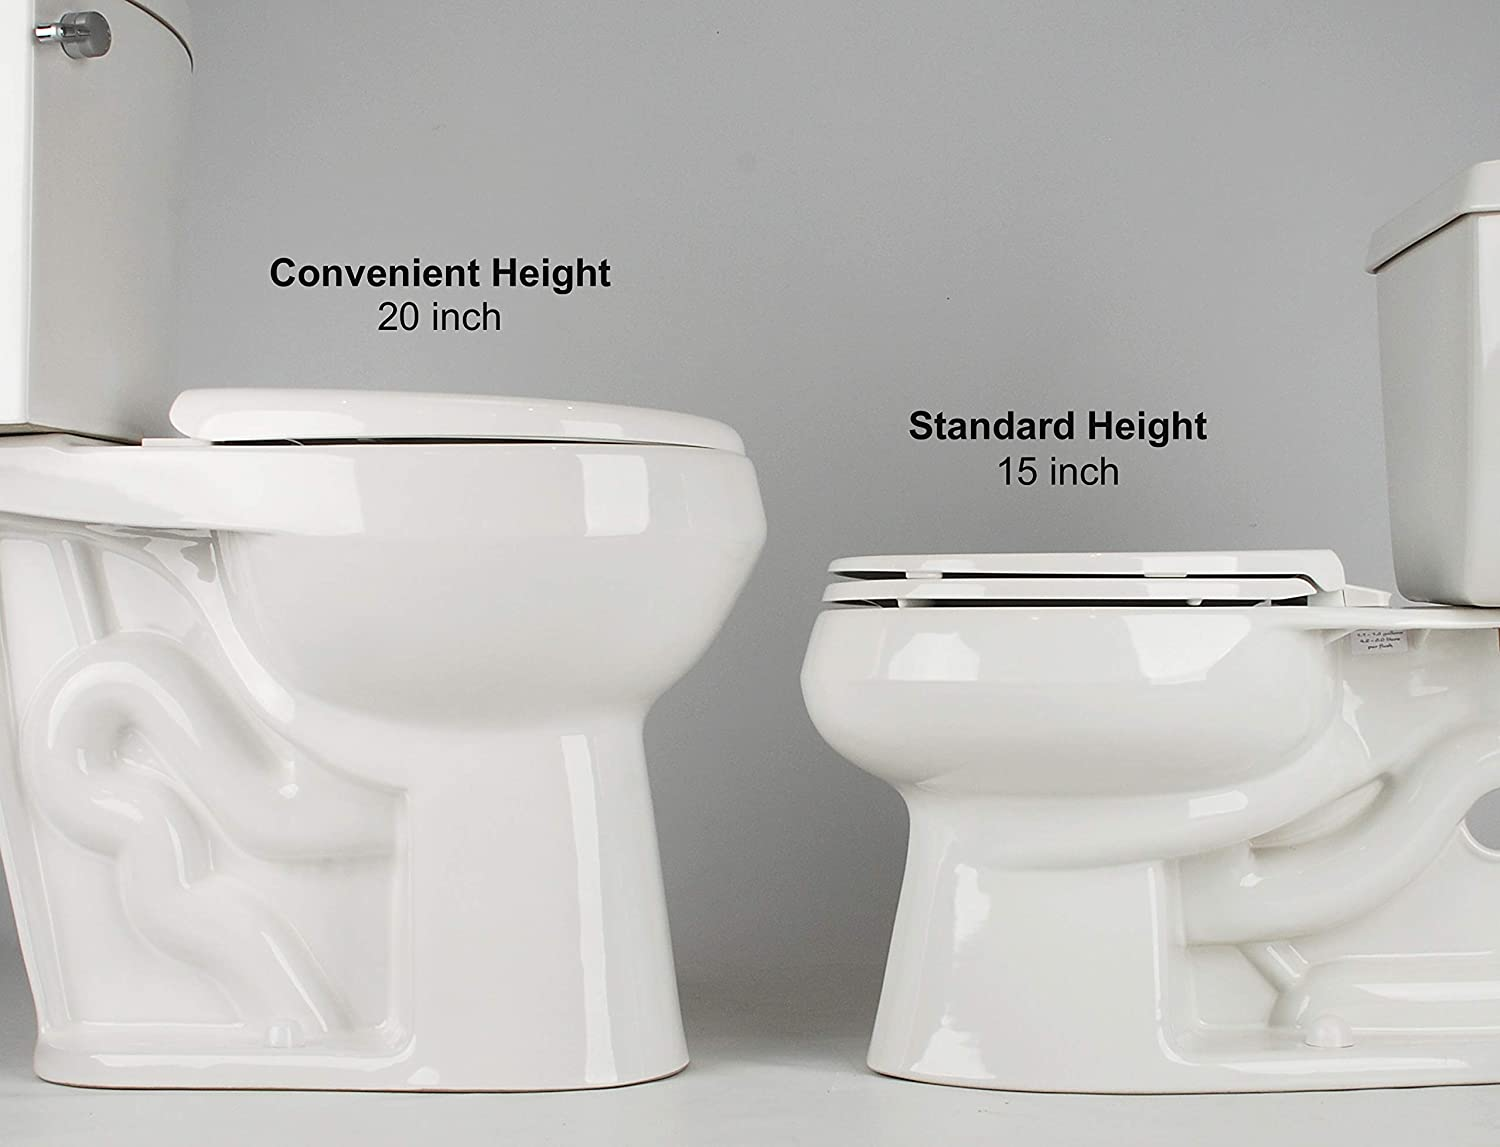 20 Inch Extra Tall Toilet Bowl Taller Than Ada Or Comfort Height